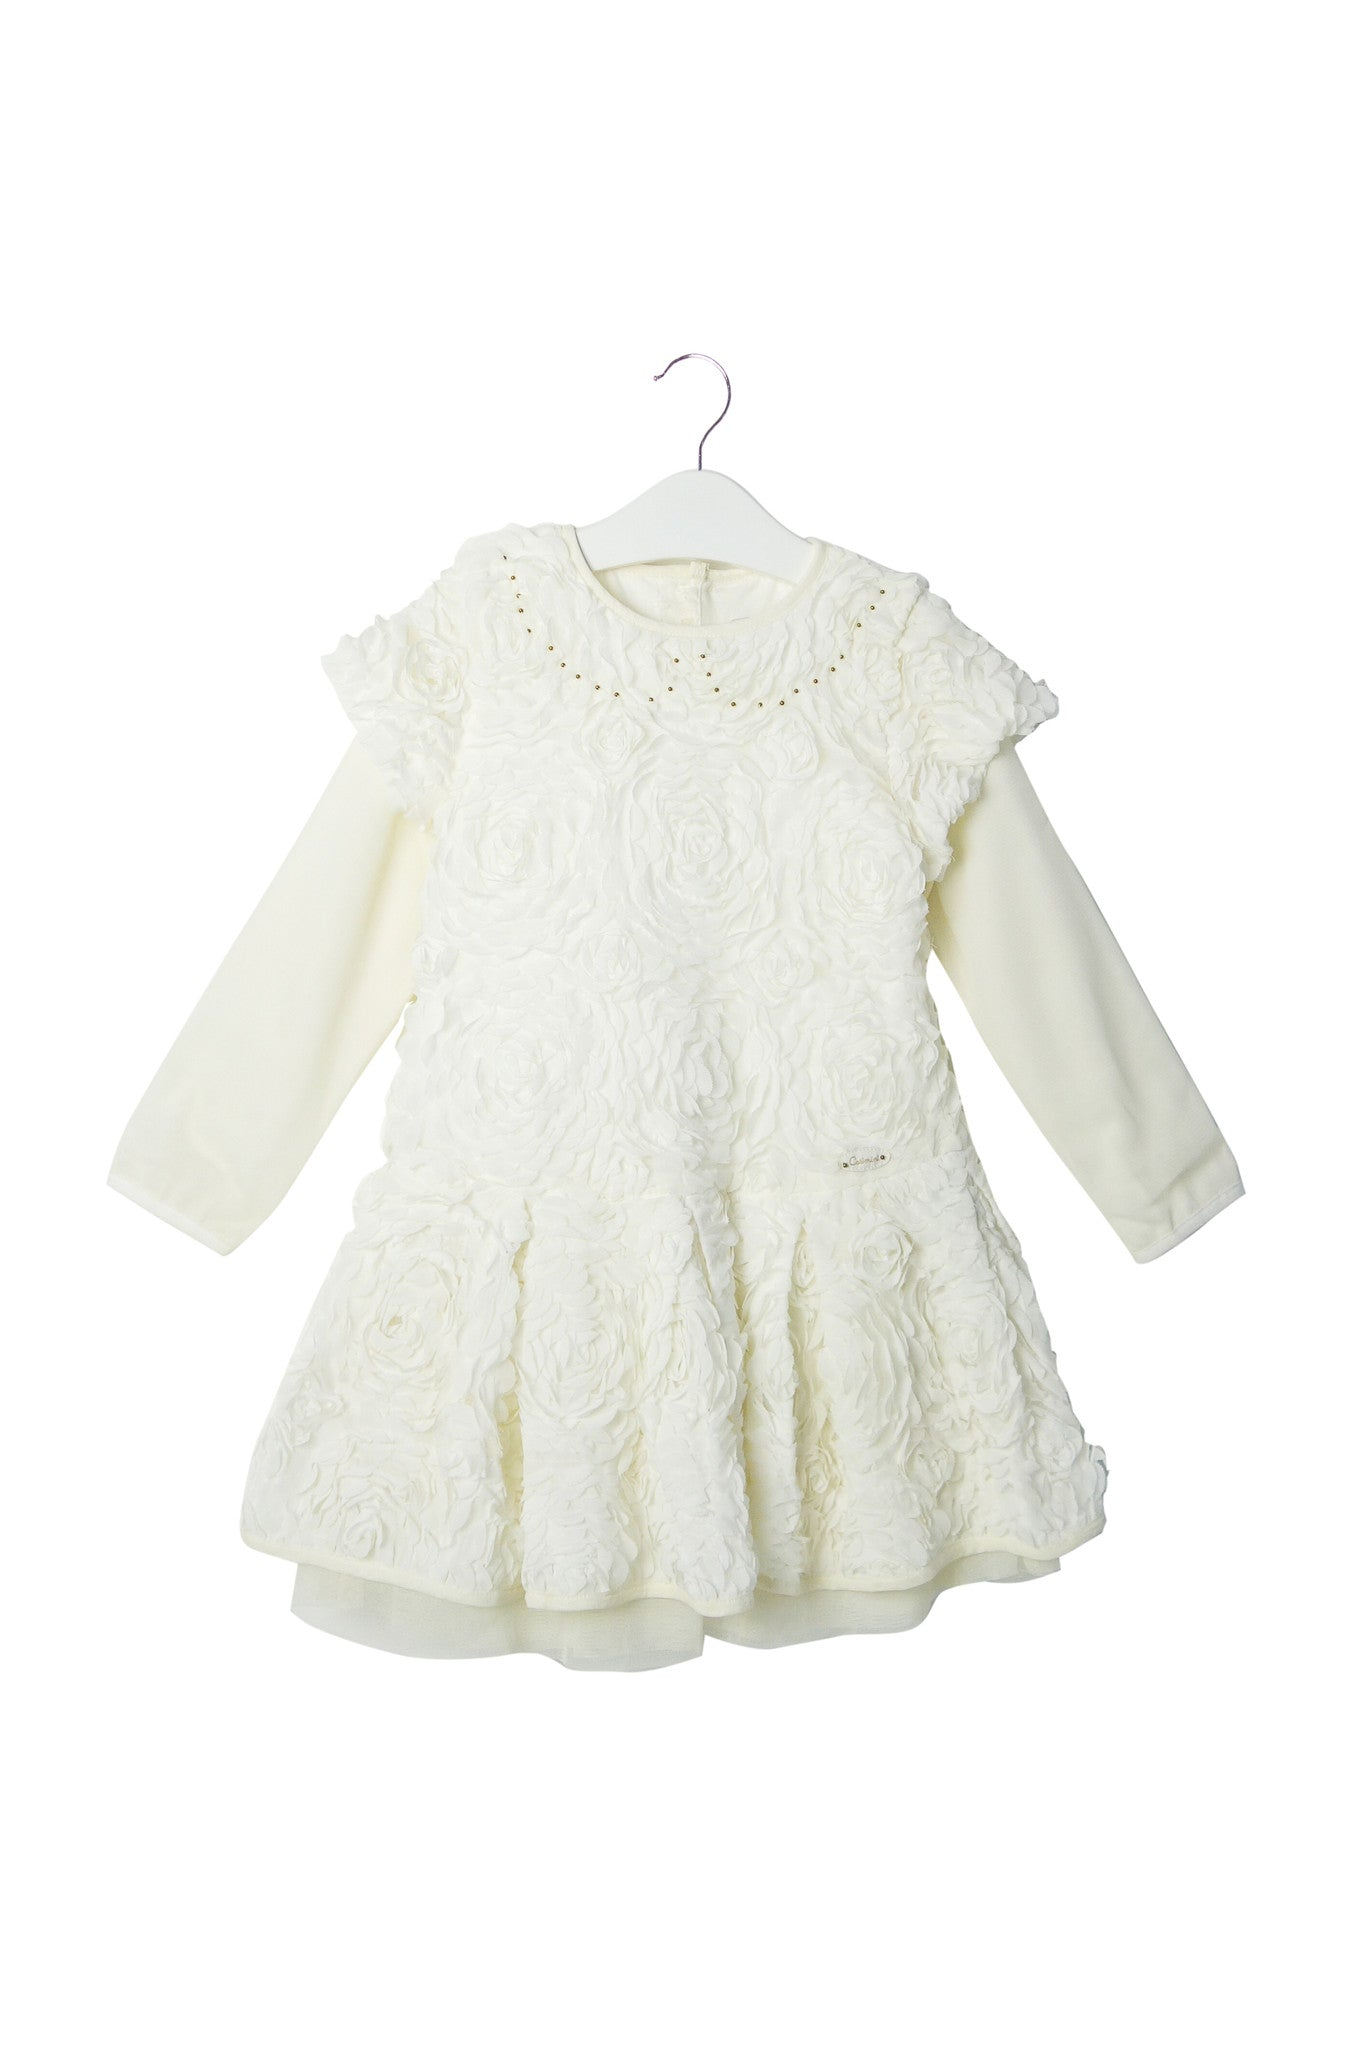 10003399 Catimini Kids~Dress 3T at Retykle